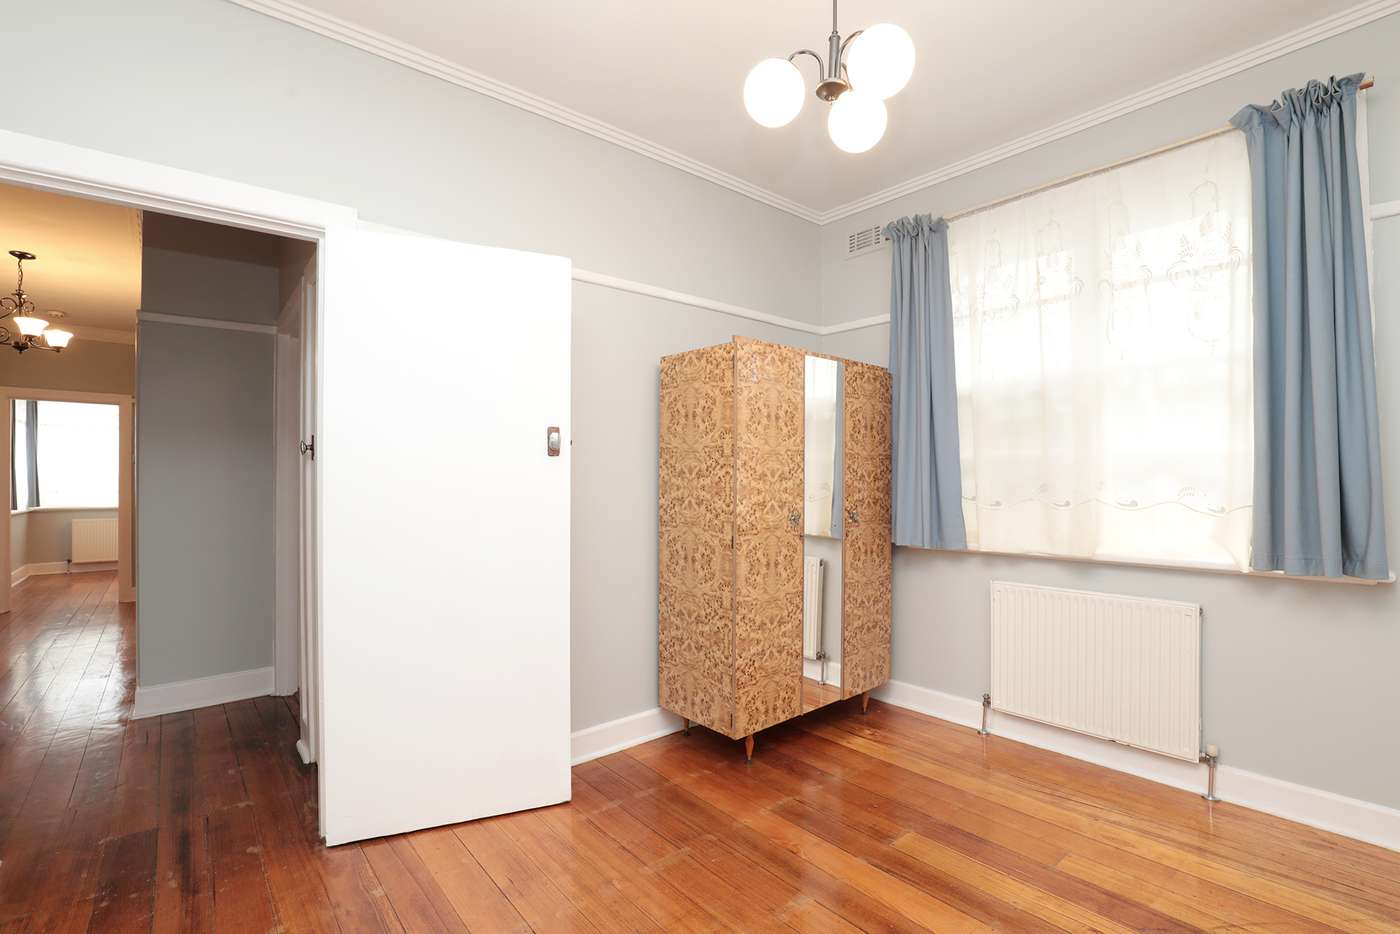 Sixth view of Homely house listing, 36 Kinlock Avenue, Murrumbeena VIC 3163